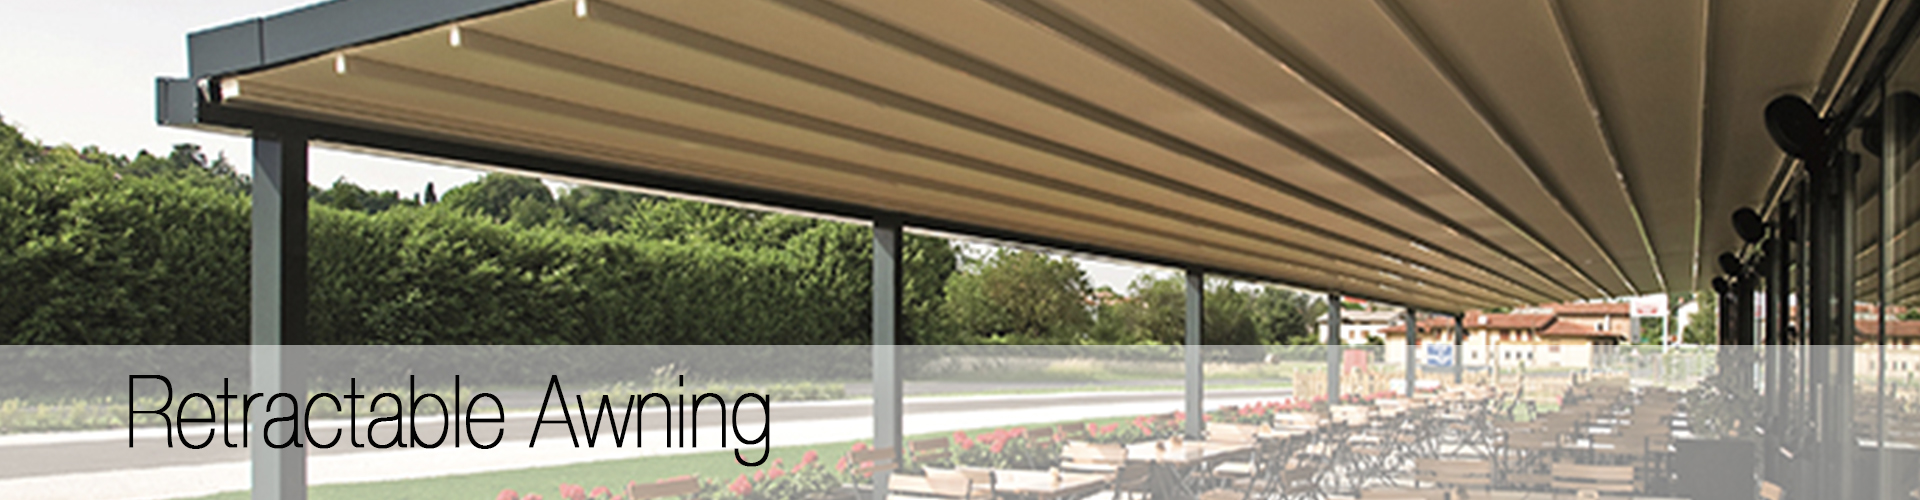 Retractable Awnings - The Fireplace Place, Fairfield, NJ